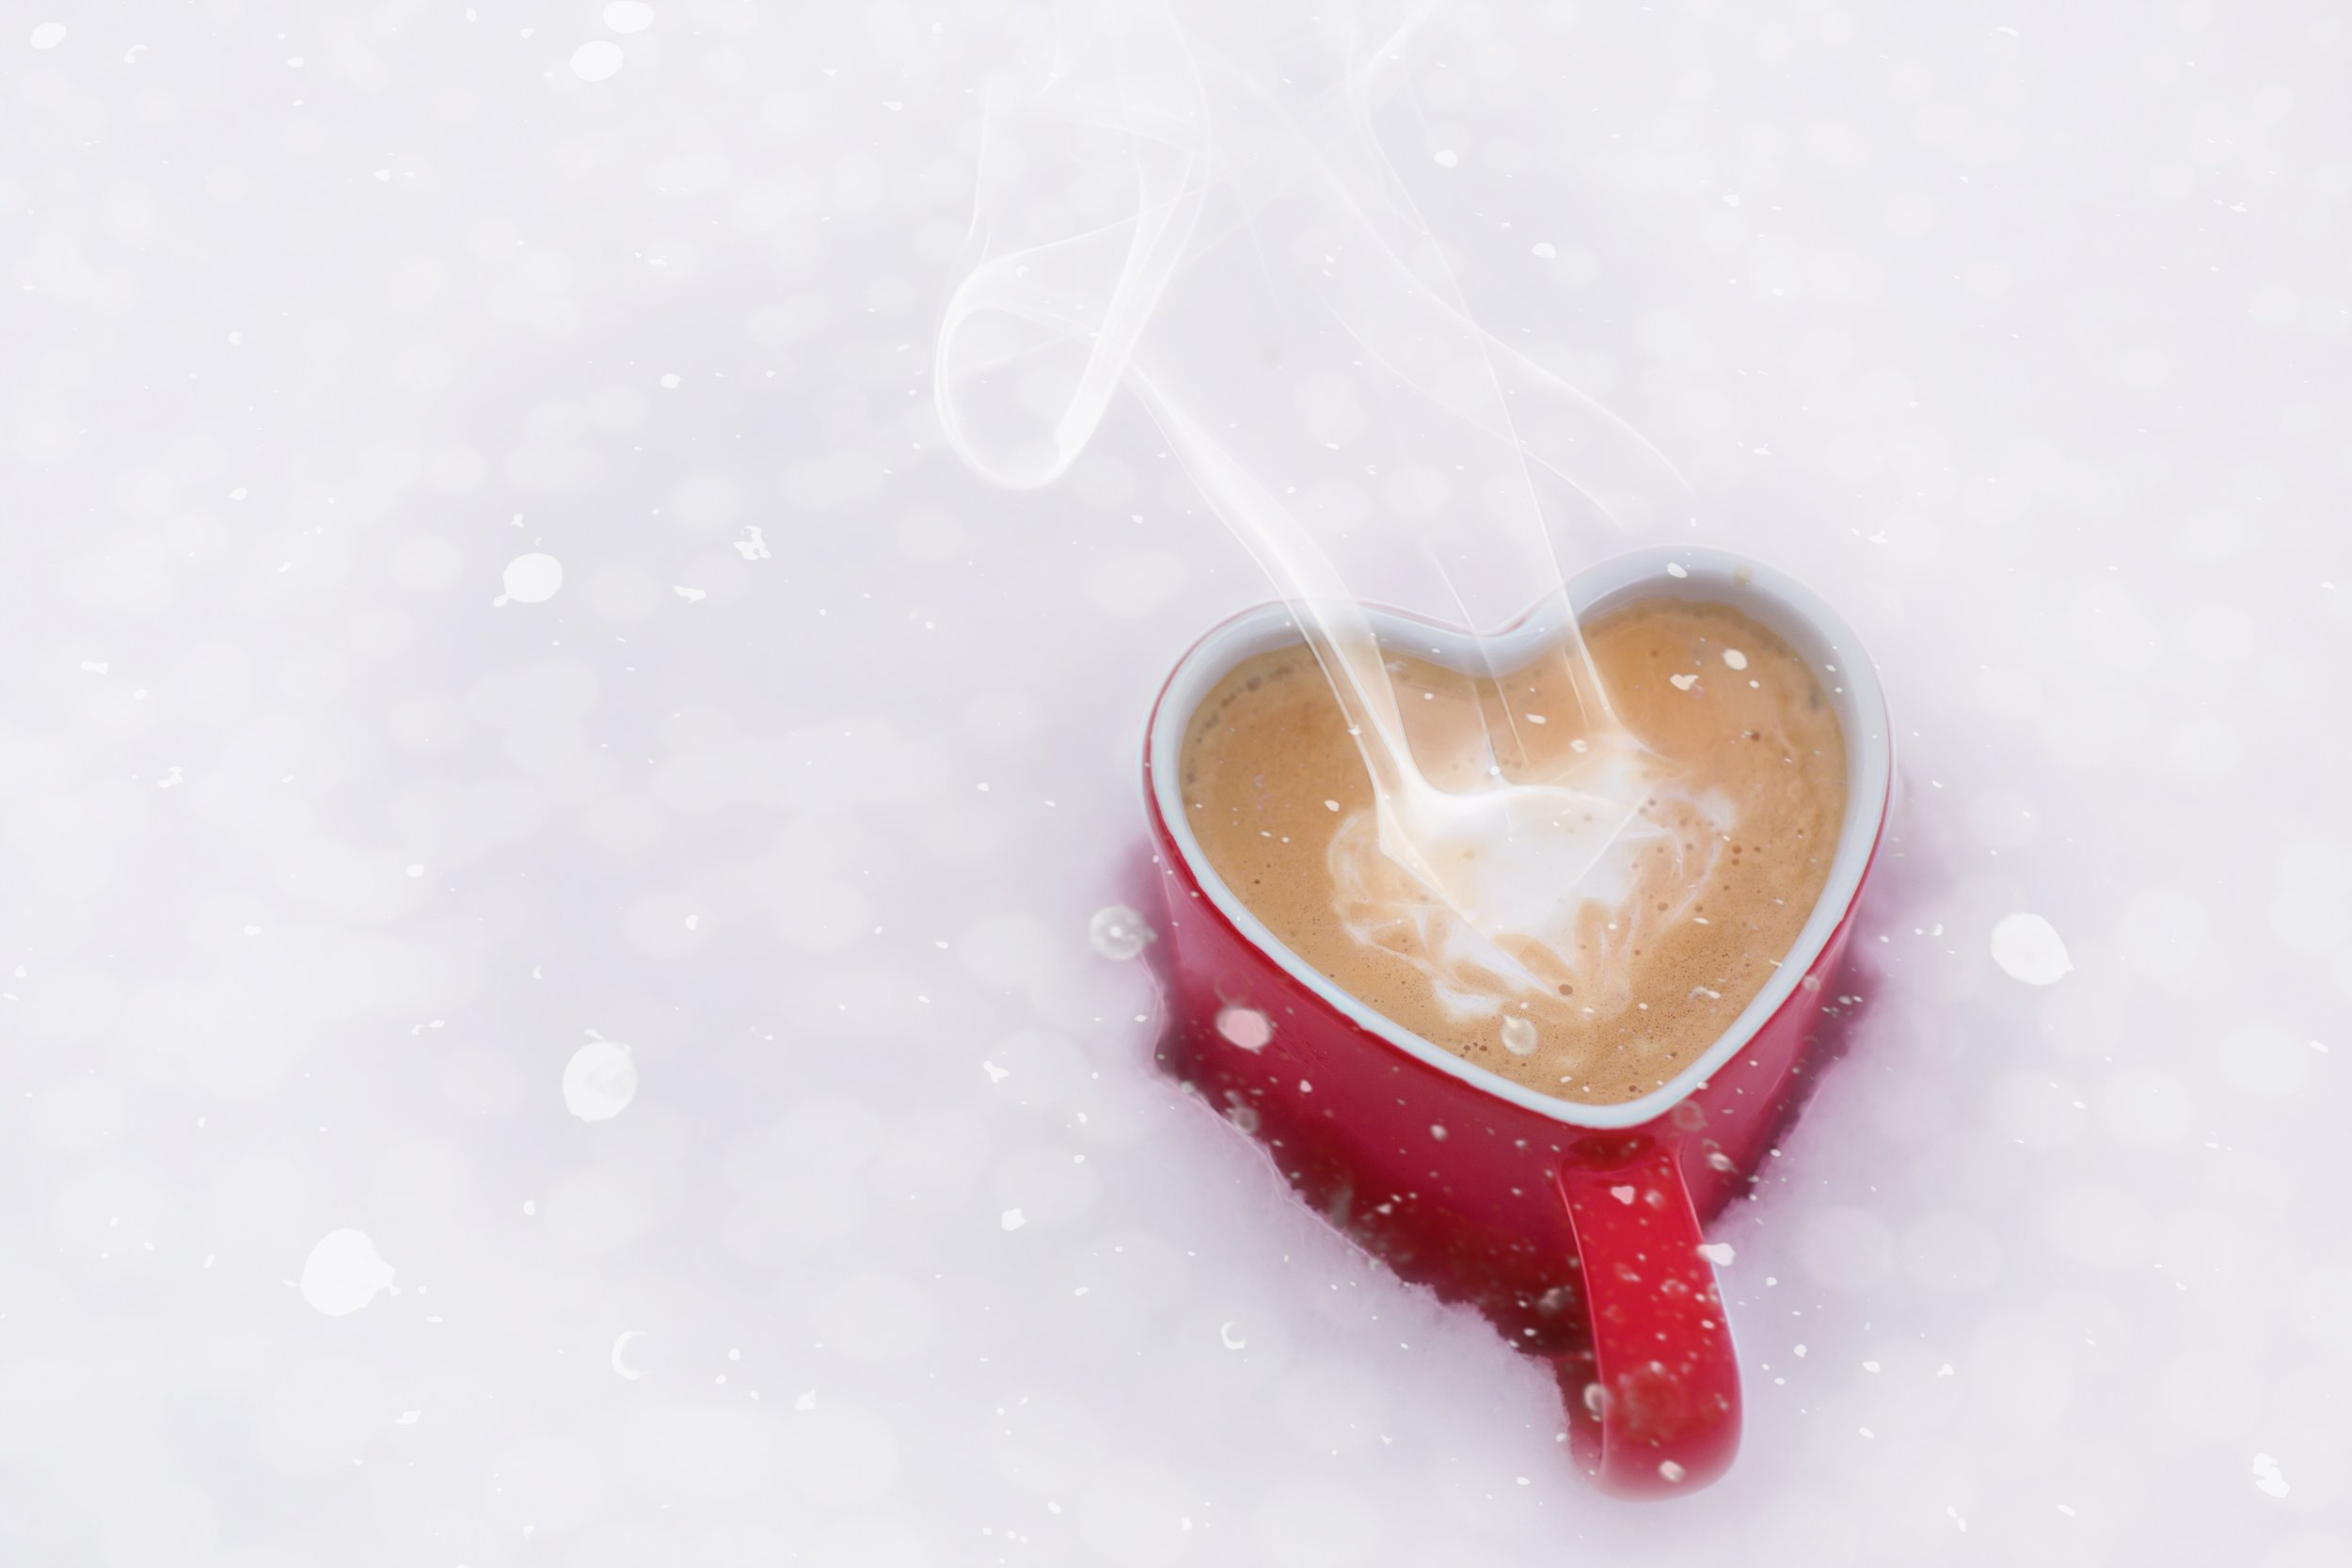 My favourite Christmas drink is warm eggnog or mulled wine for extra chilli nights!